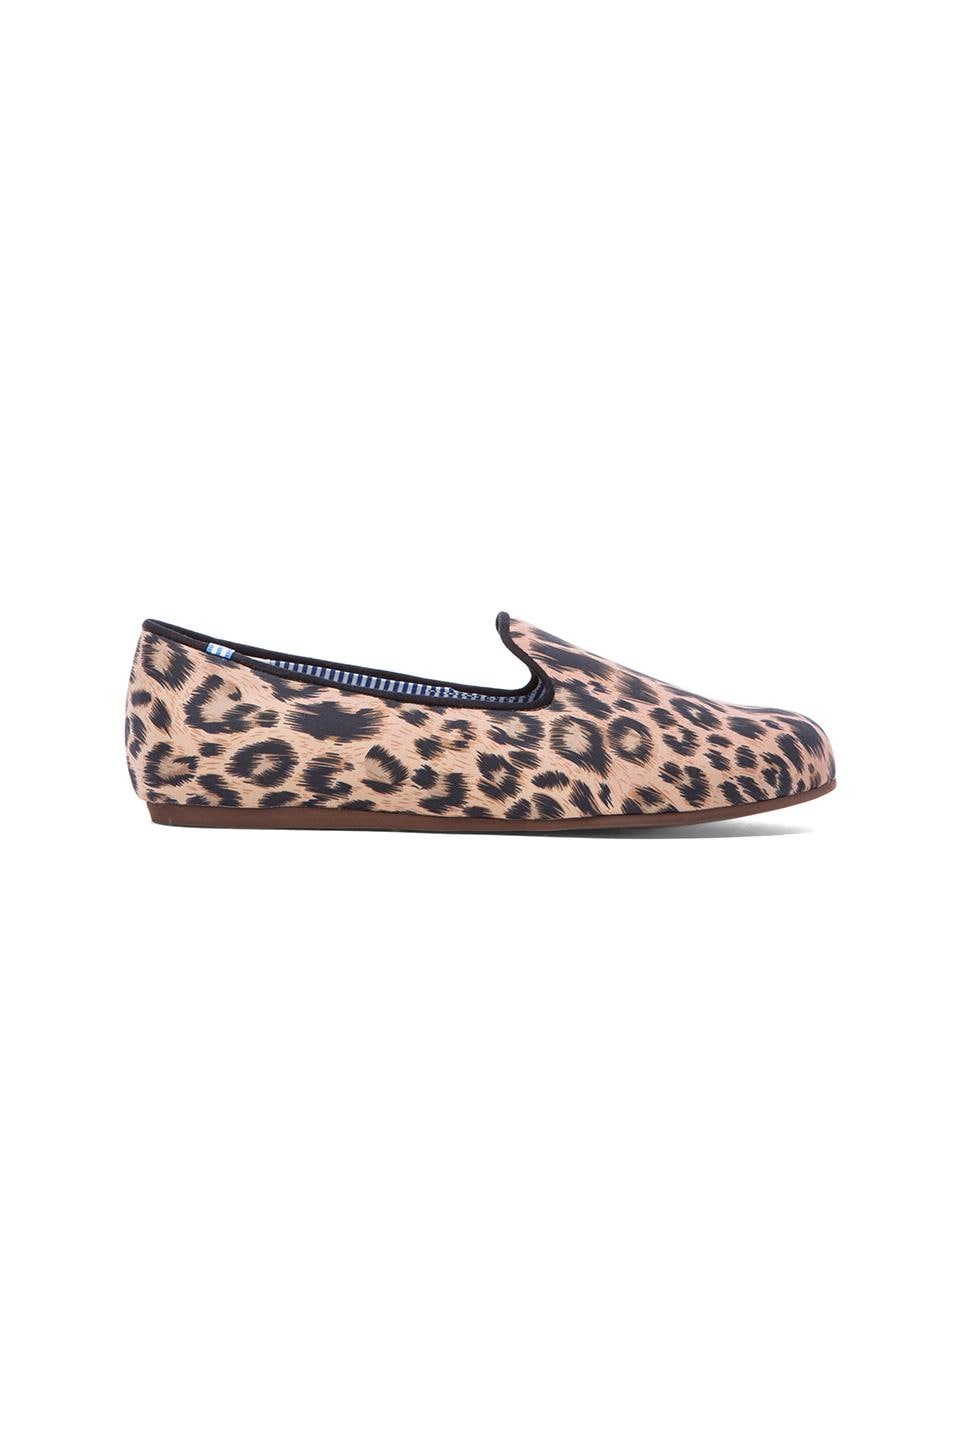 Charles Philip Shanghai Costantino in Classic Leopard